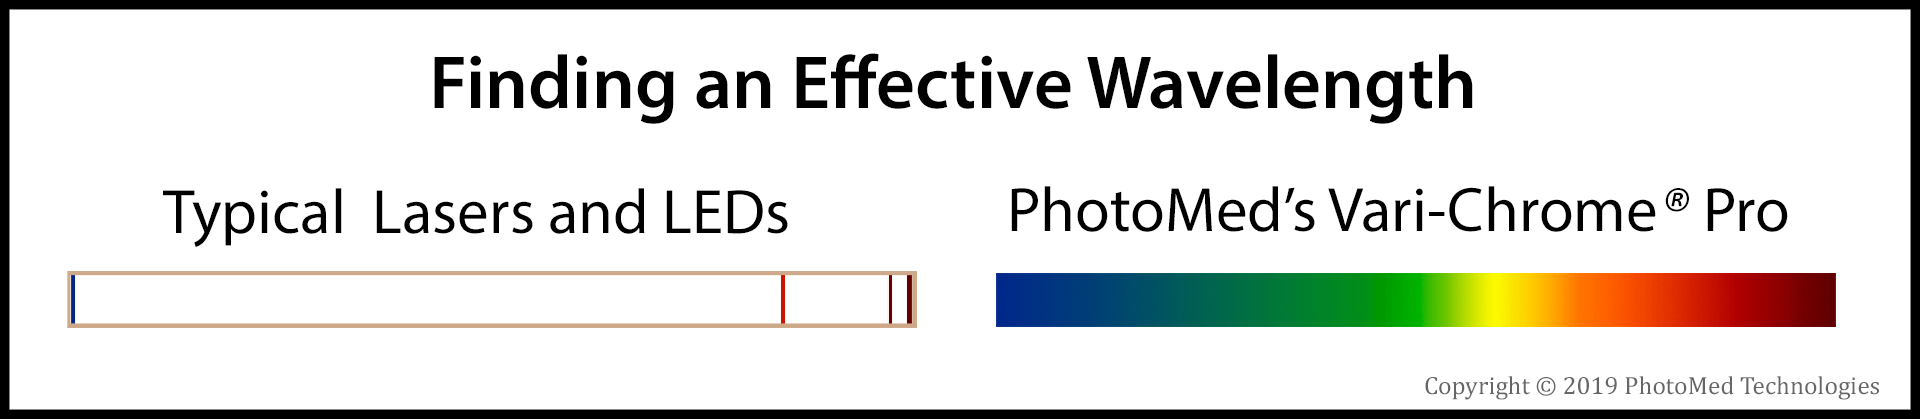 Fixed wavelength devices work great for specific disorders, such as red for musculoskeletal or inflammation. Blue stimulates nerves and may have anti-microbial effects in wounds. Access to all visible wavelength, a few at a time, may increase the likelihood of finding ones that work.